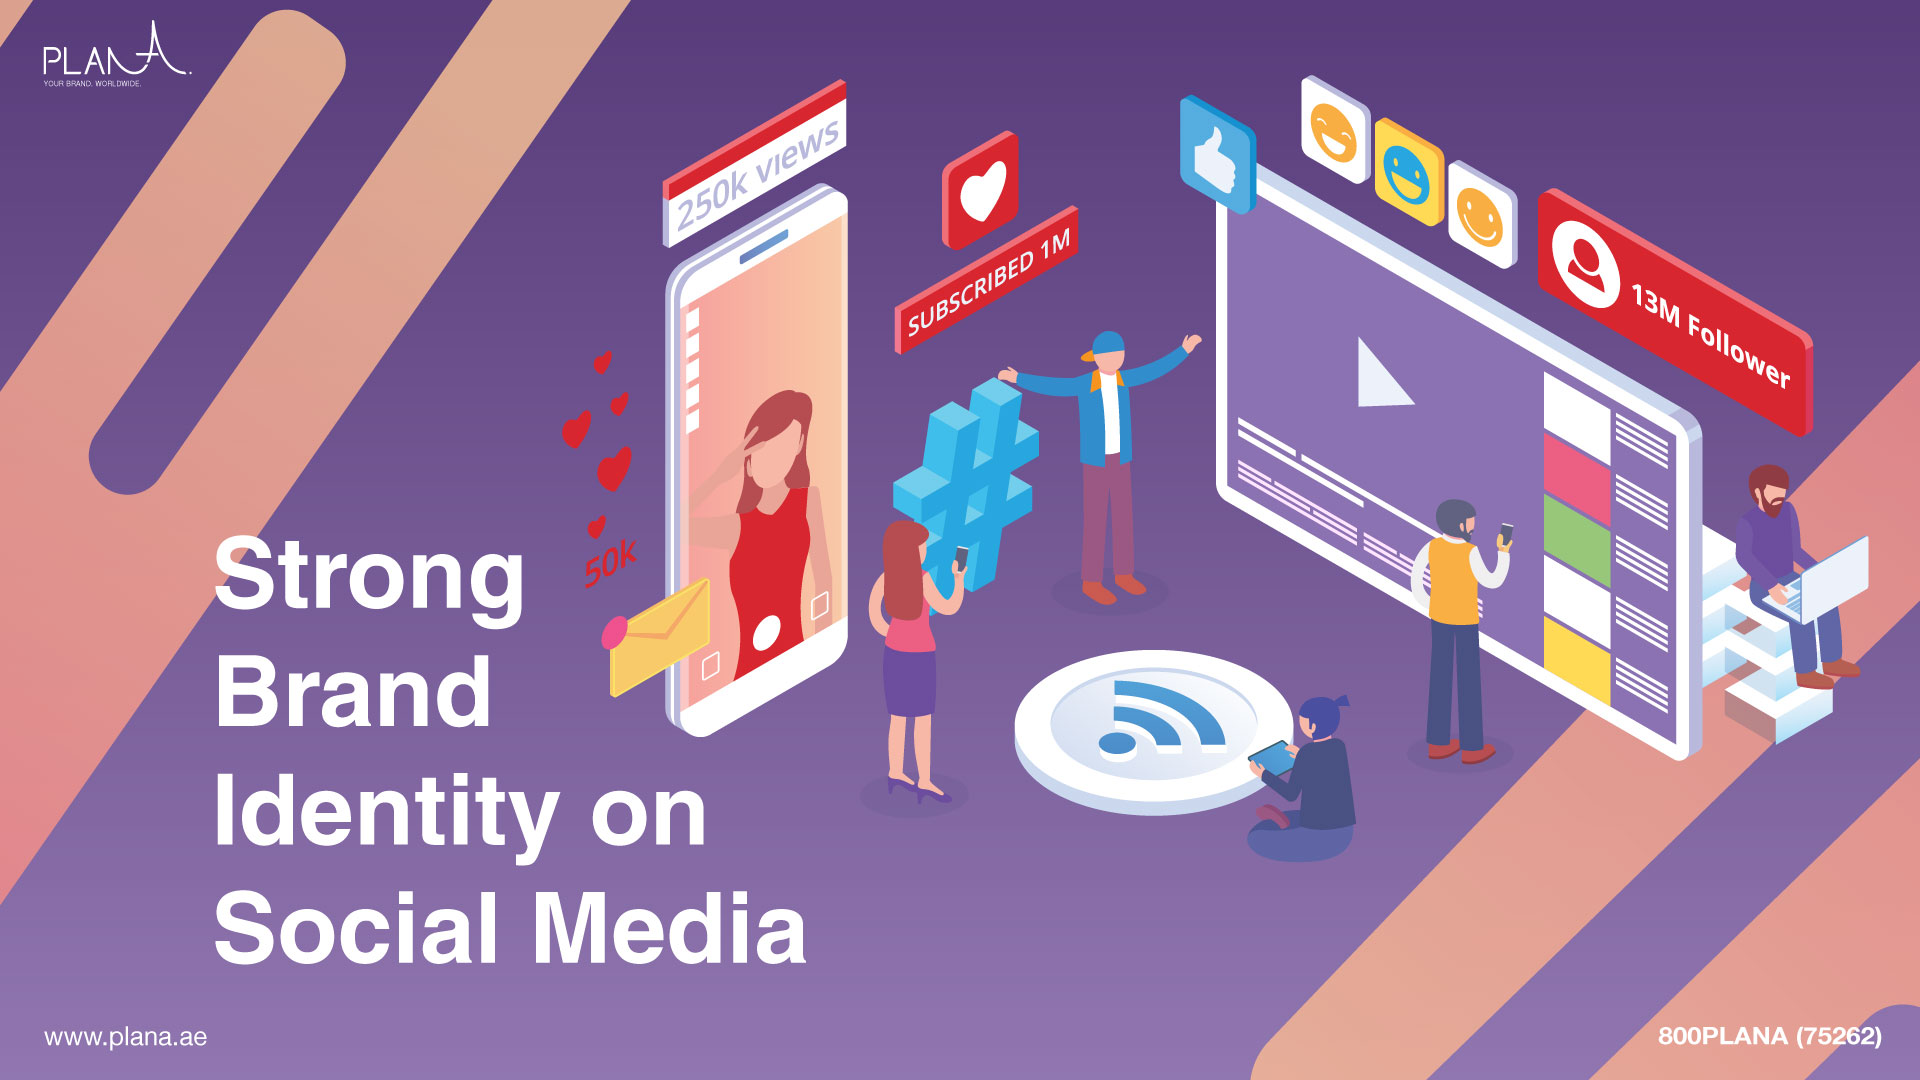 How to Build and Maintain A Strong Brand Identity on Social Media